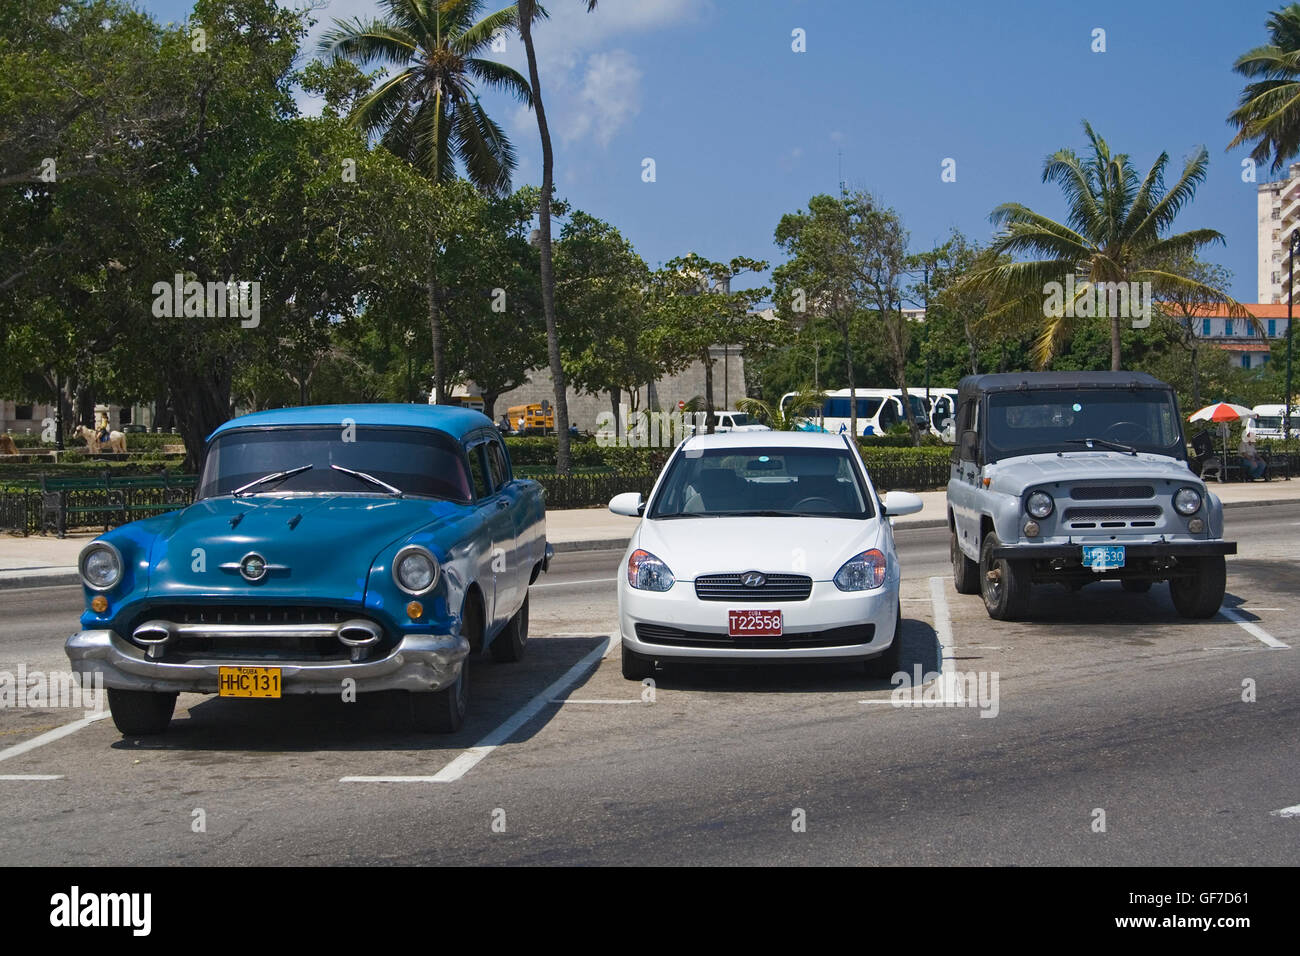 Antic Car Havana Stock Photos & Antic Car Havana Stock Images - Alamy